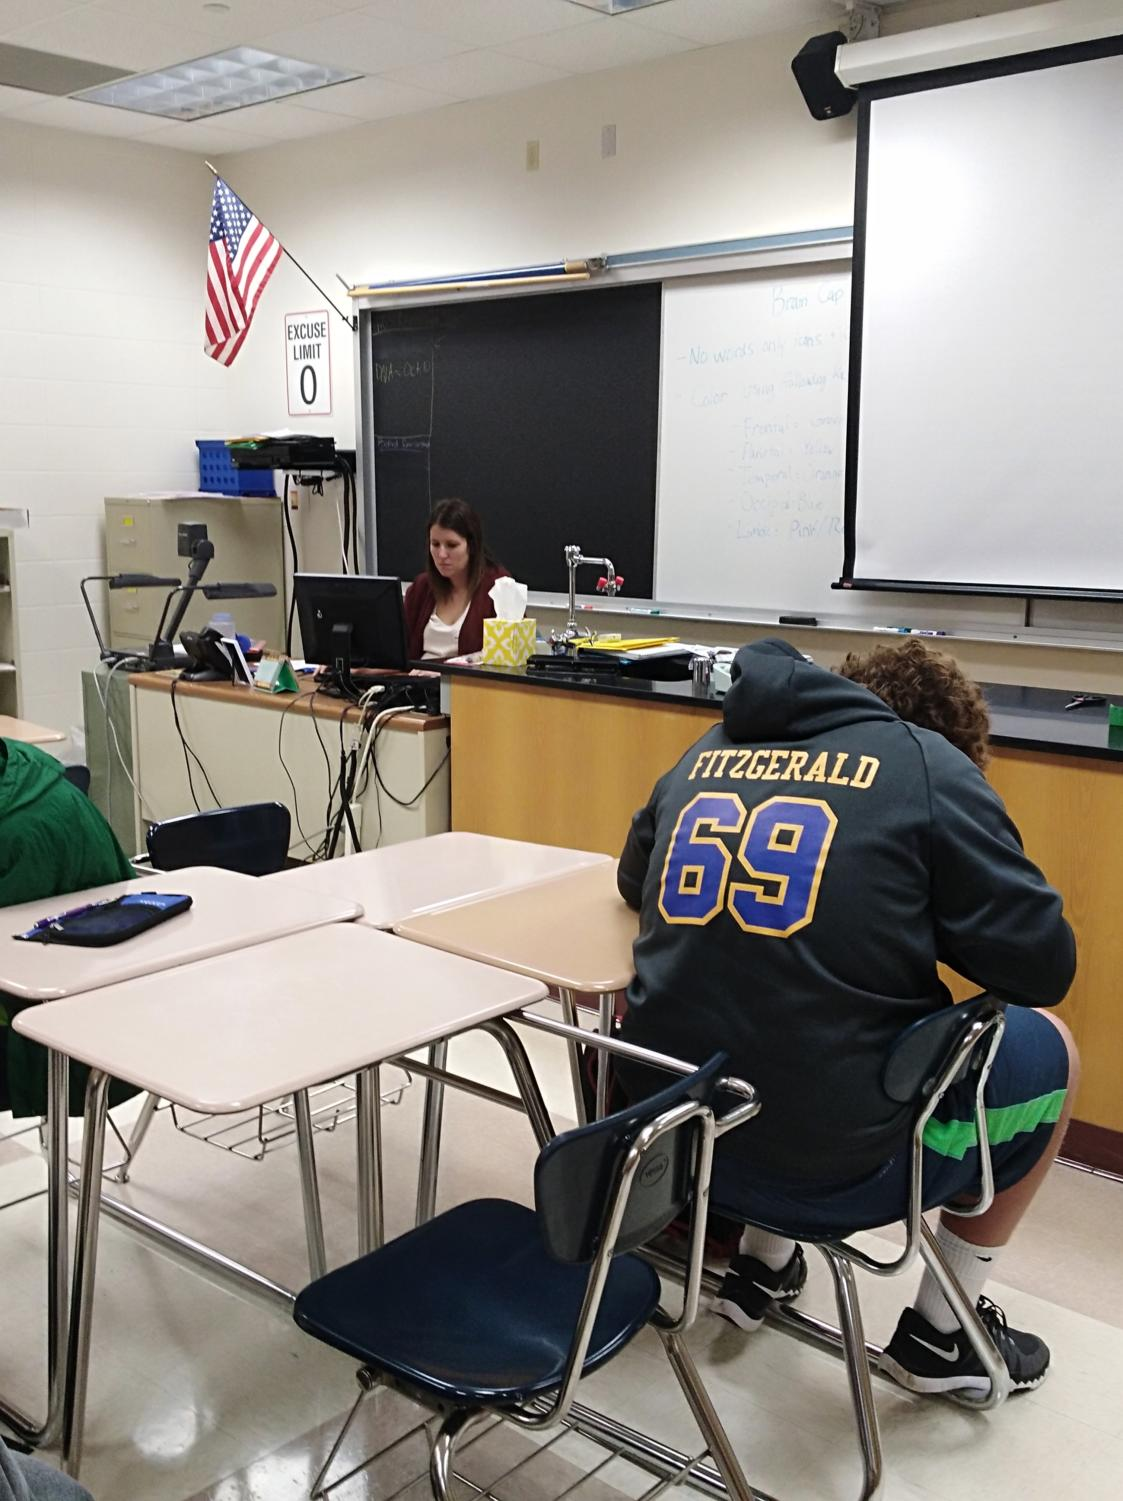 Alyssa Mastin, Club Med sponsor and science teacher, works on lesson plans during SRT. Although Mastin said she knows most of the club's events and what will be occurring at those events, she had no input or idea on how the new leaders were selected or who they actually are.